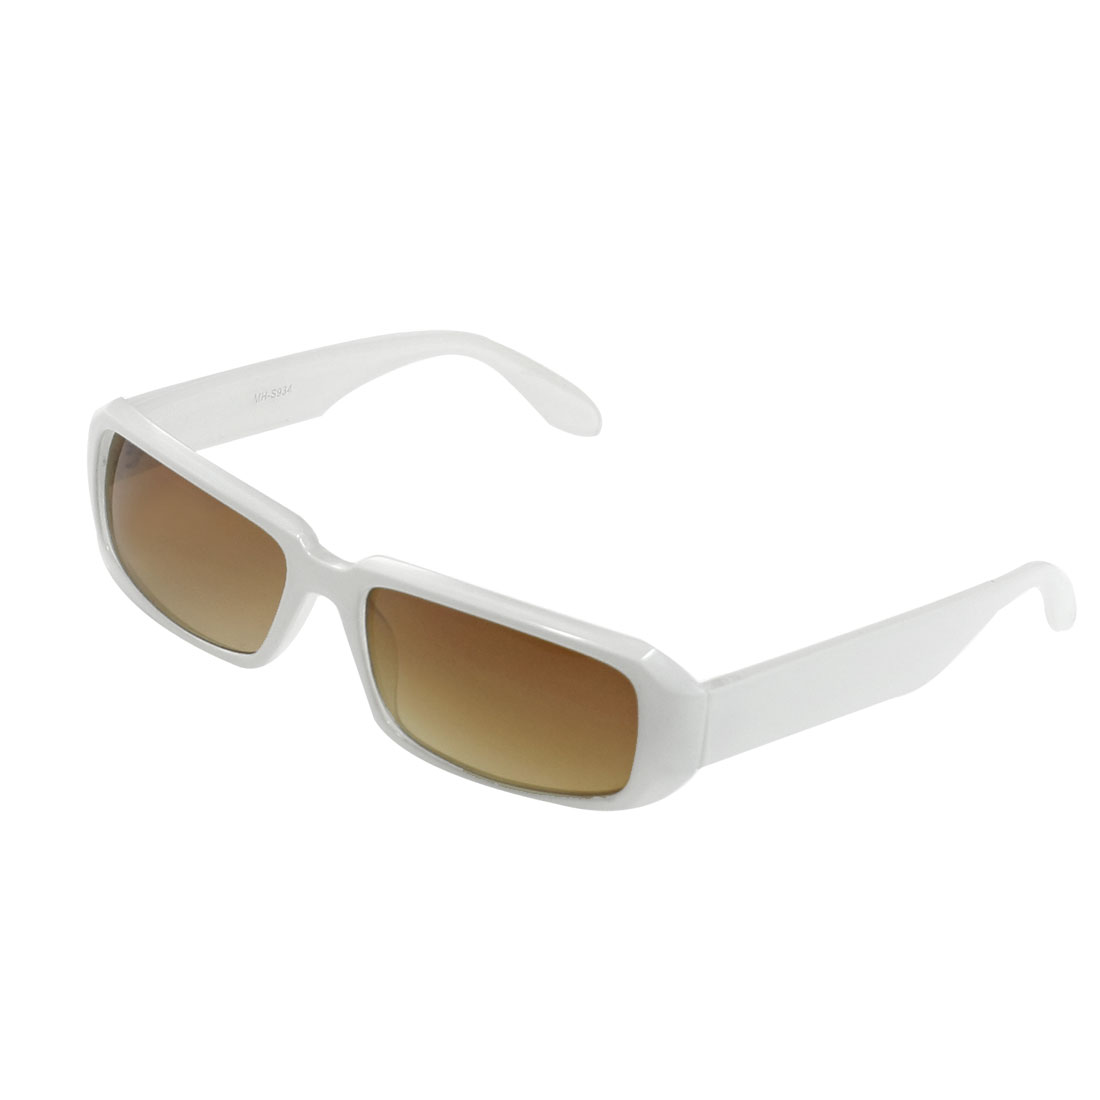 White Plastic Arms Light Brown Lens Protection Sunglasses Eyewear for Ladies